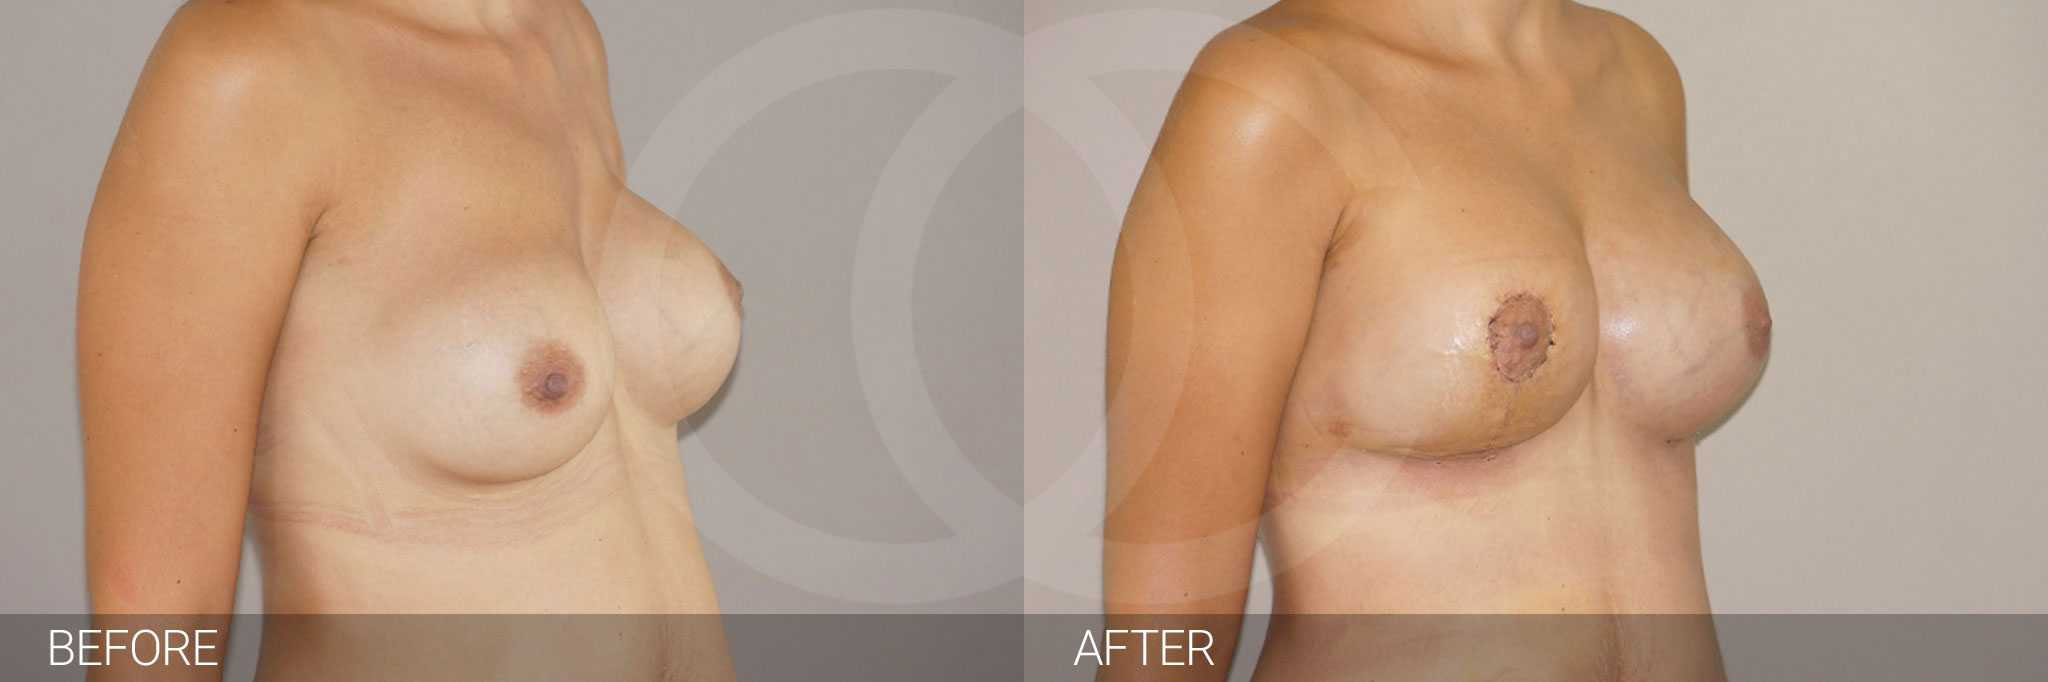 Breast Reconstruction Breast asymmetry ante/post-op II